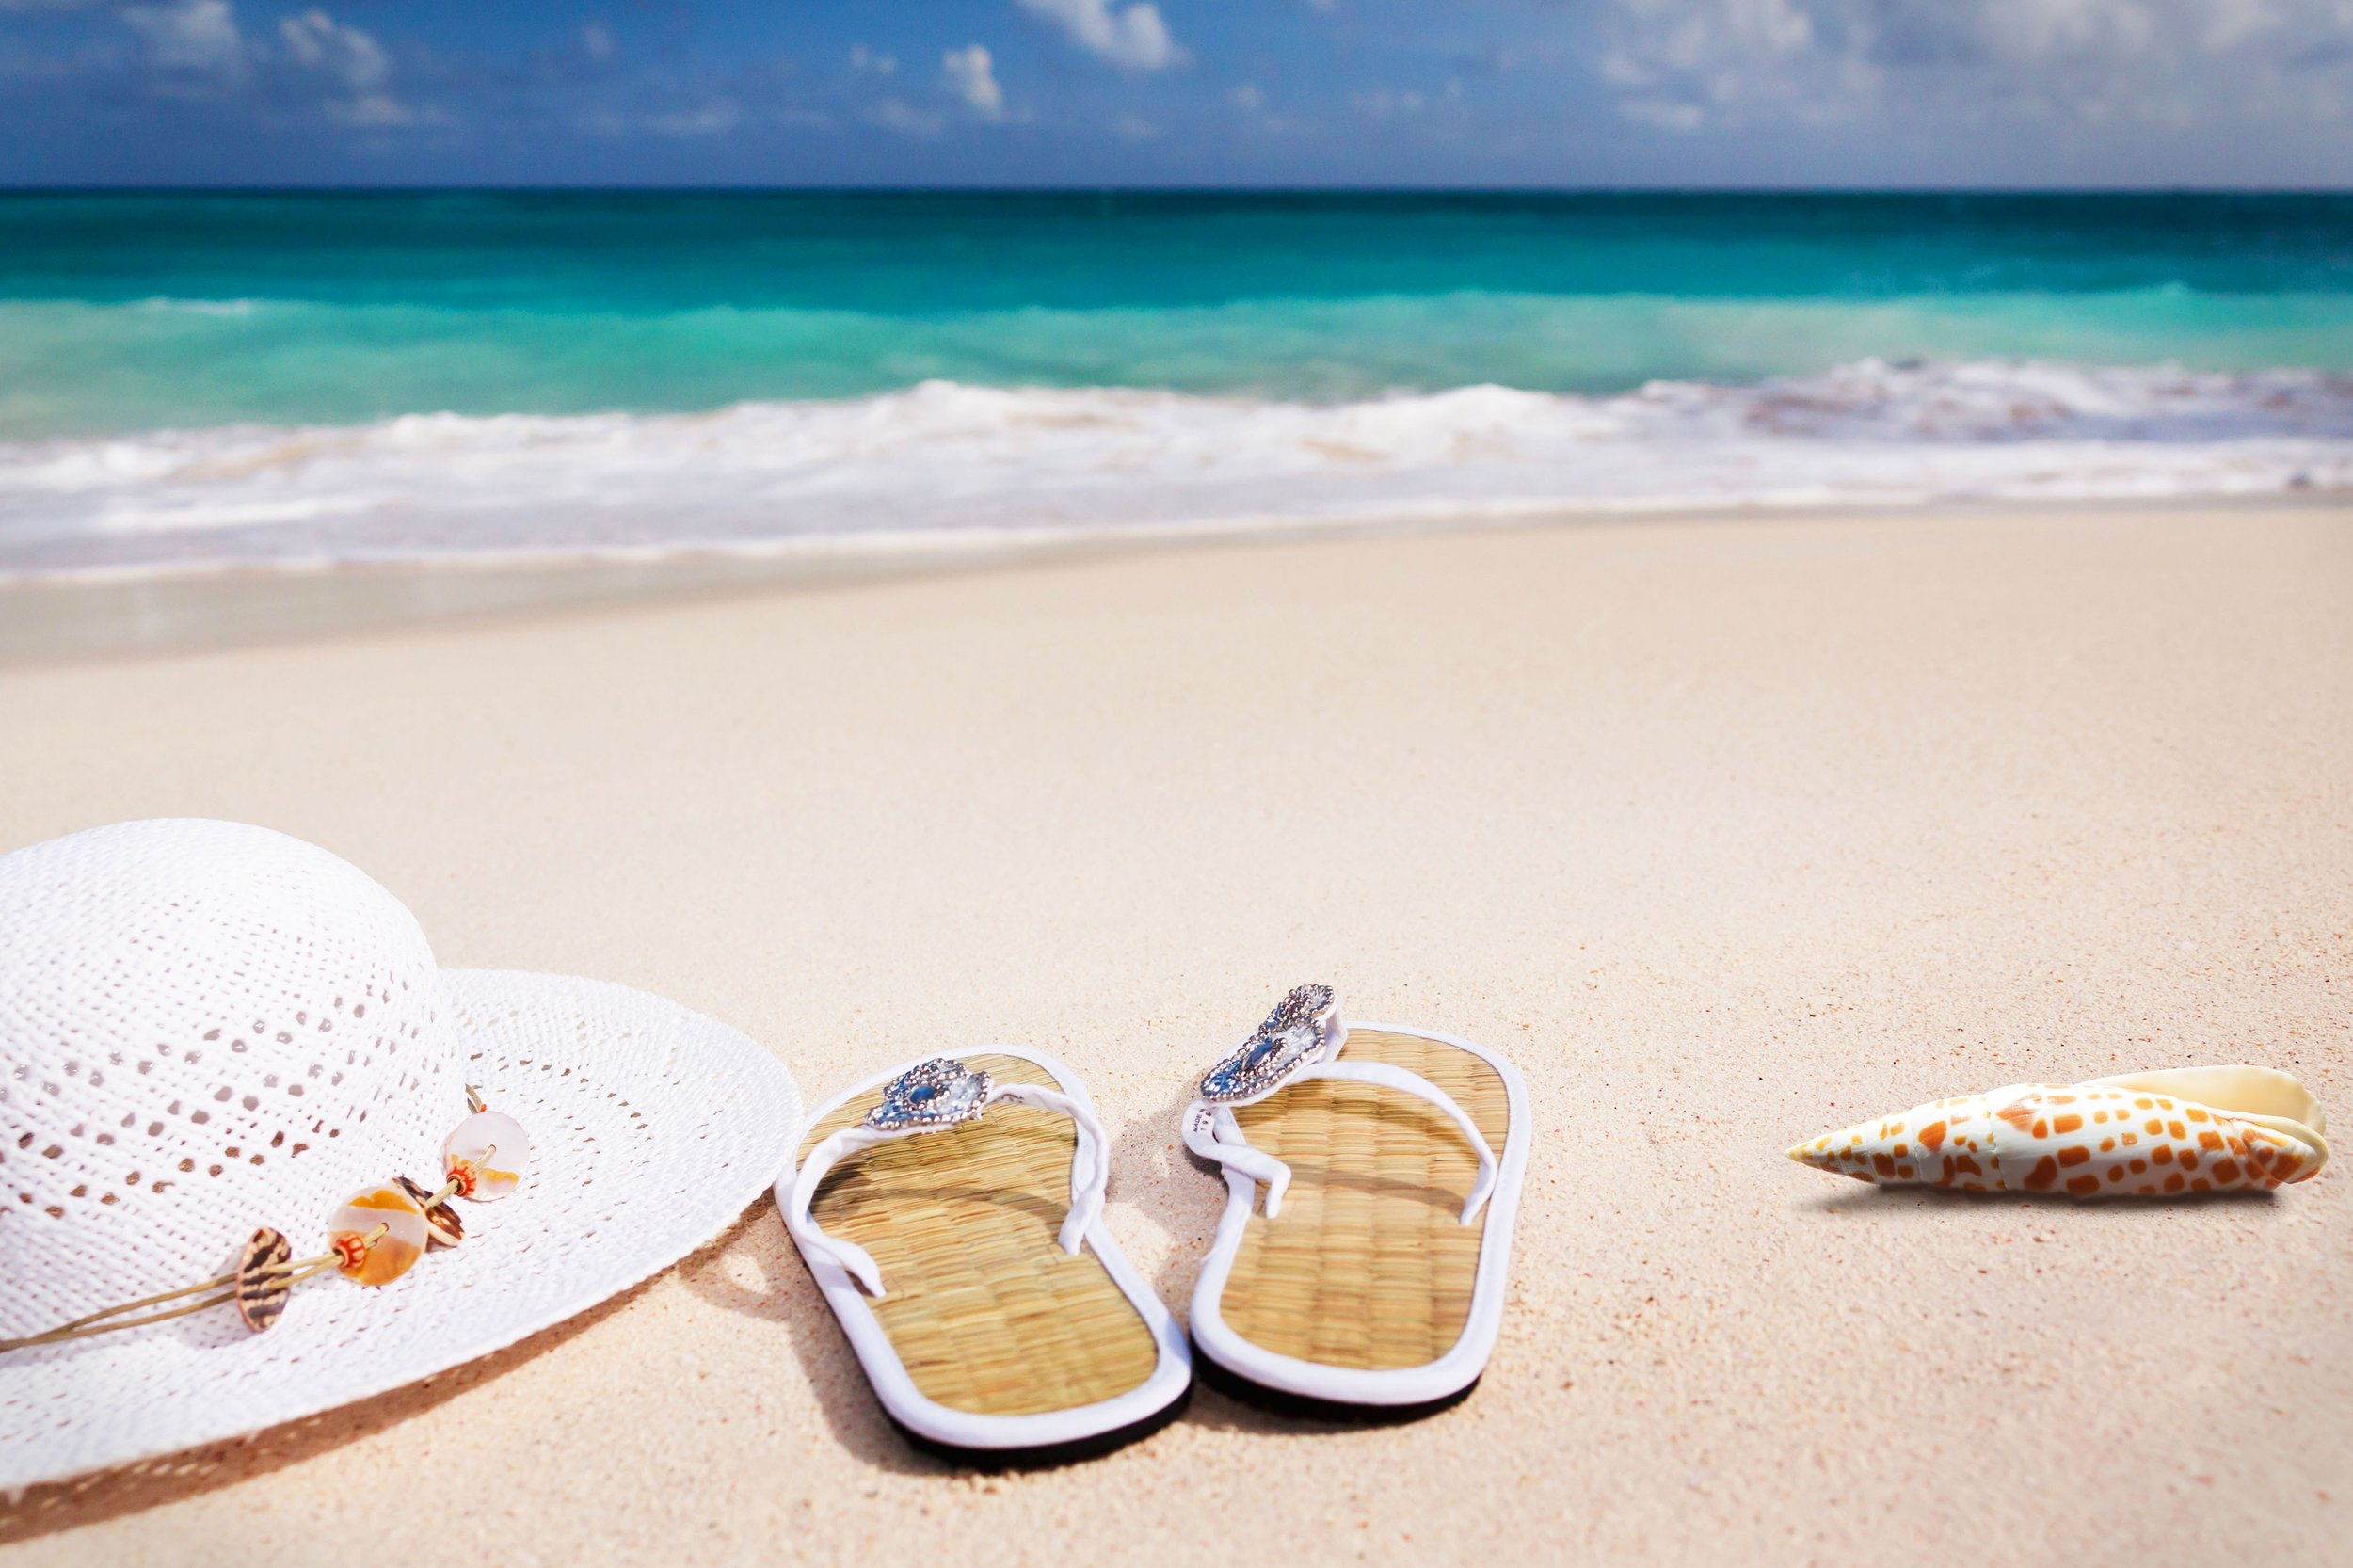 hat-sandals-and-shell-caribbean-summer-and-vacations-159-big.jpg